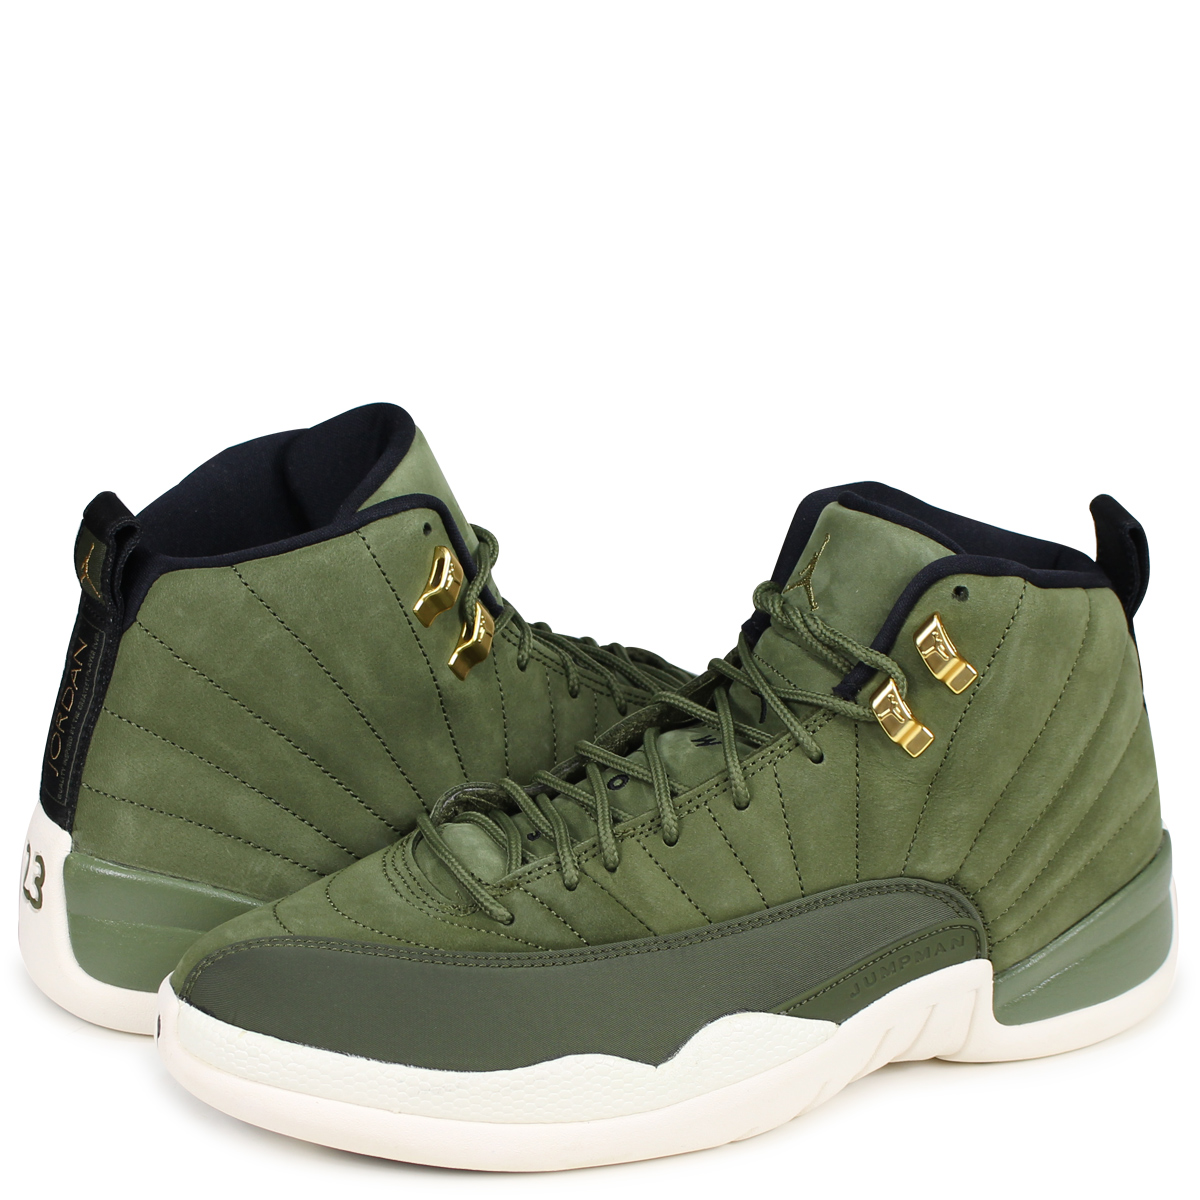 super popular de674 2a1e4 NIKE AIR JORDAN 12 RETRO Nike Air Jordan 12 nostalgic sneakers men  130,690-301 olive [1810]